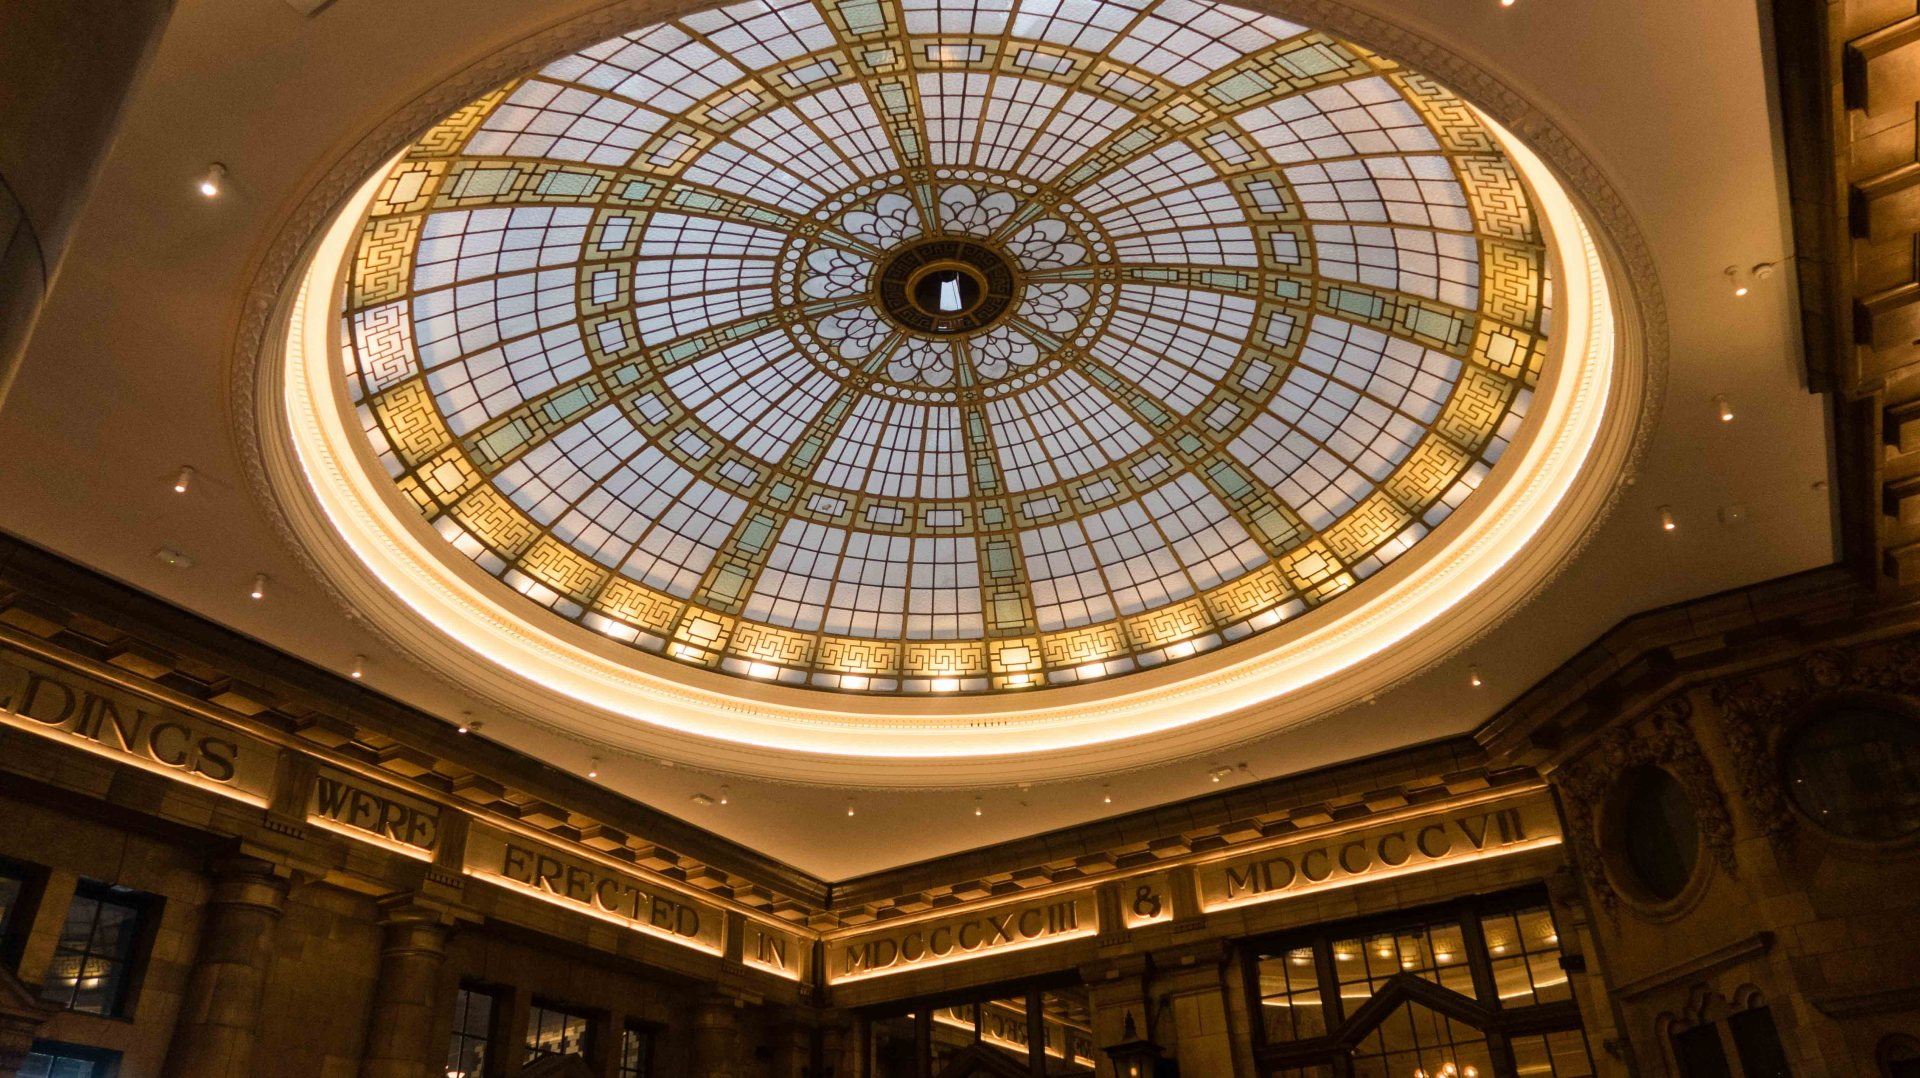 The domed glass ceiling at The Principal Hotel